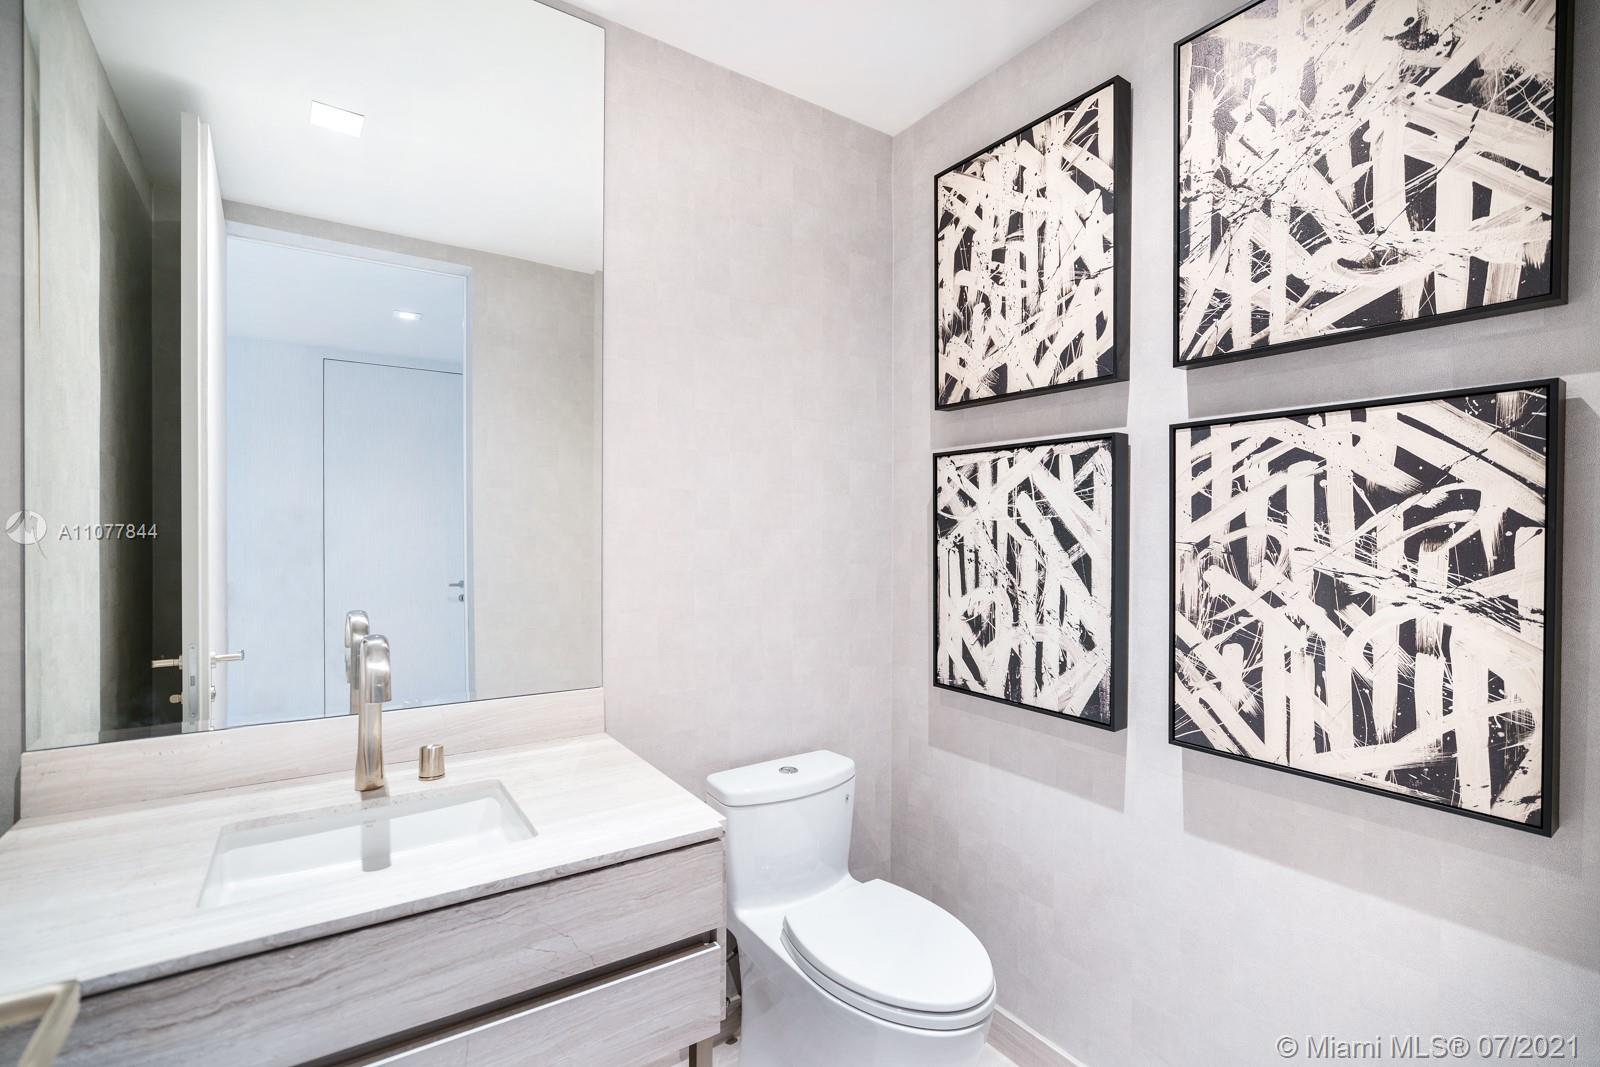 18975 Collins Ave, Unit #3700 Luxury Real Estate